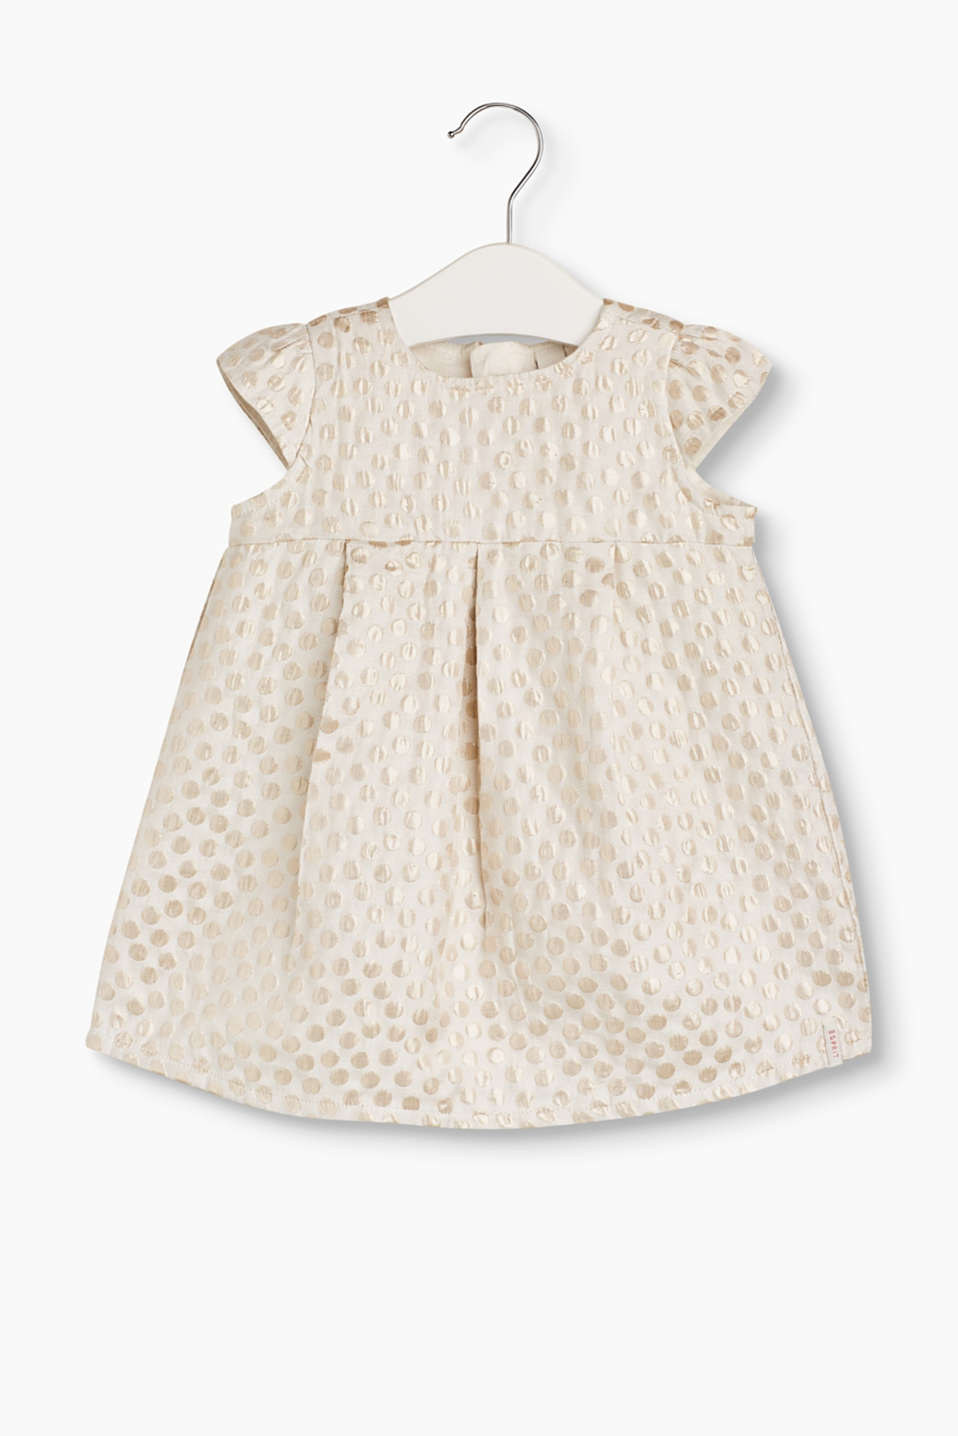 Esprit - Dress with a shimmering polka dot jacquard